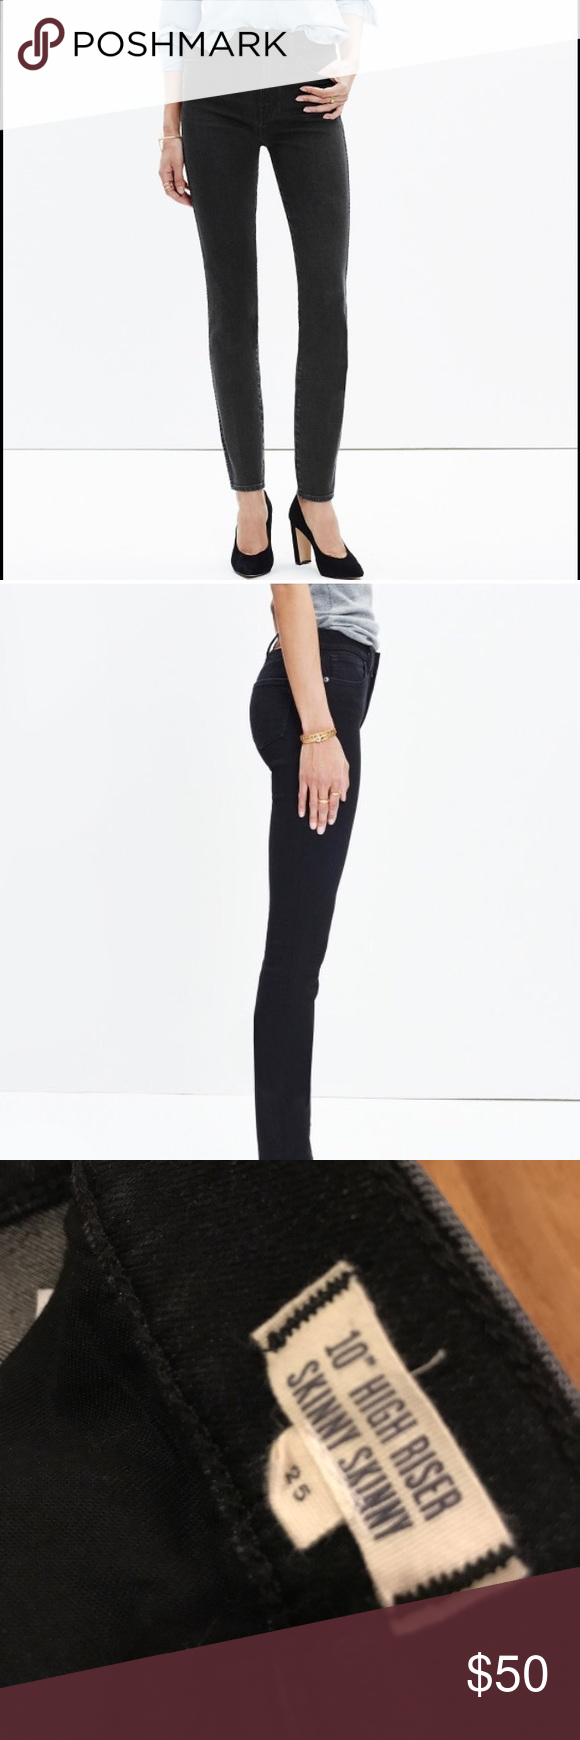 "Madewell High-Riser Skinny Dark Grey Jeans - 25 Madewell High-Riser Skinny Skinny 10"". Dark Grey Denin. Size 25. Worn twice! Excellent condition. Madewell Jeans Skinny"